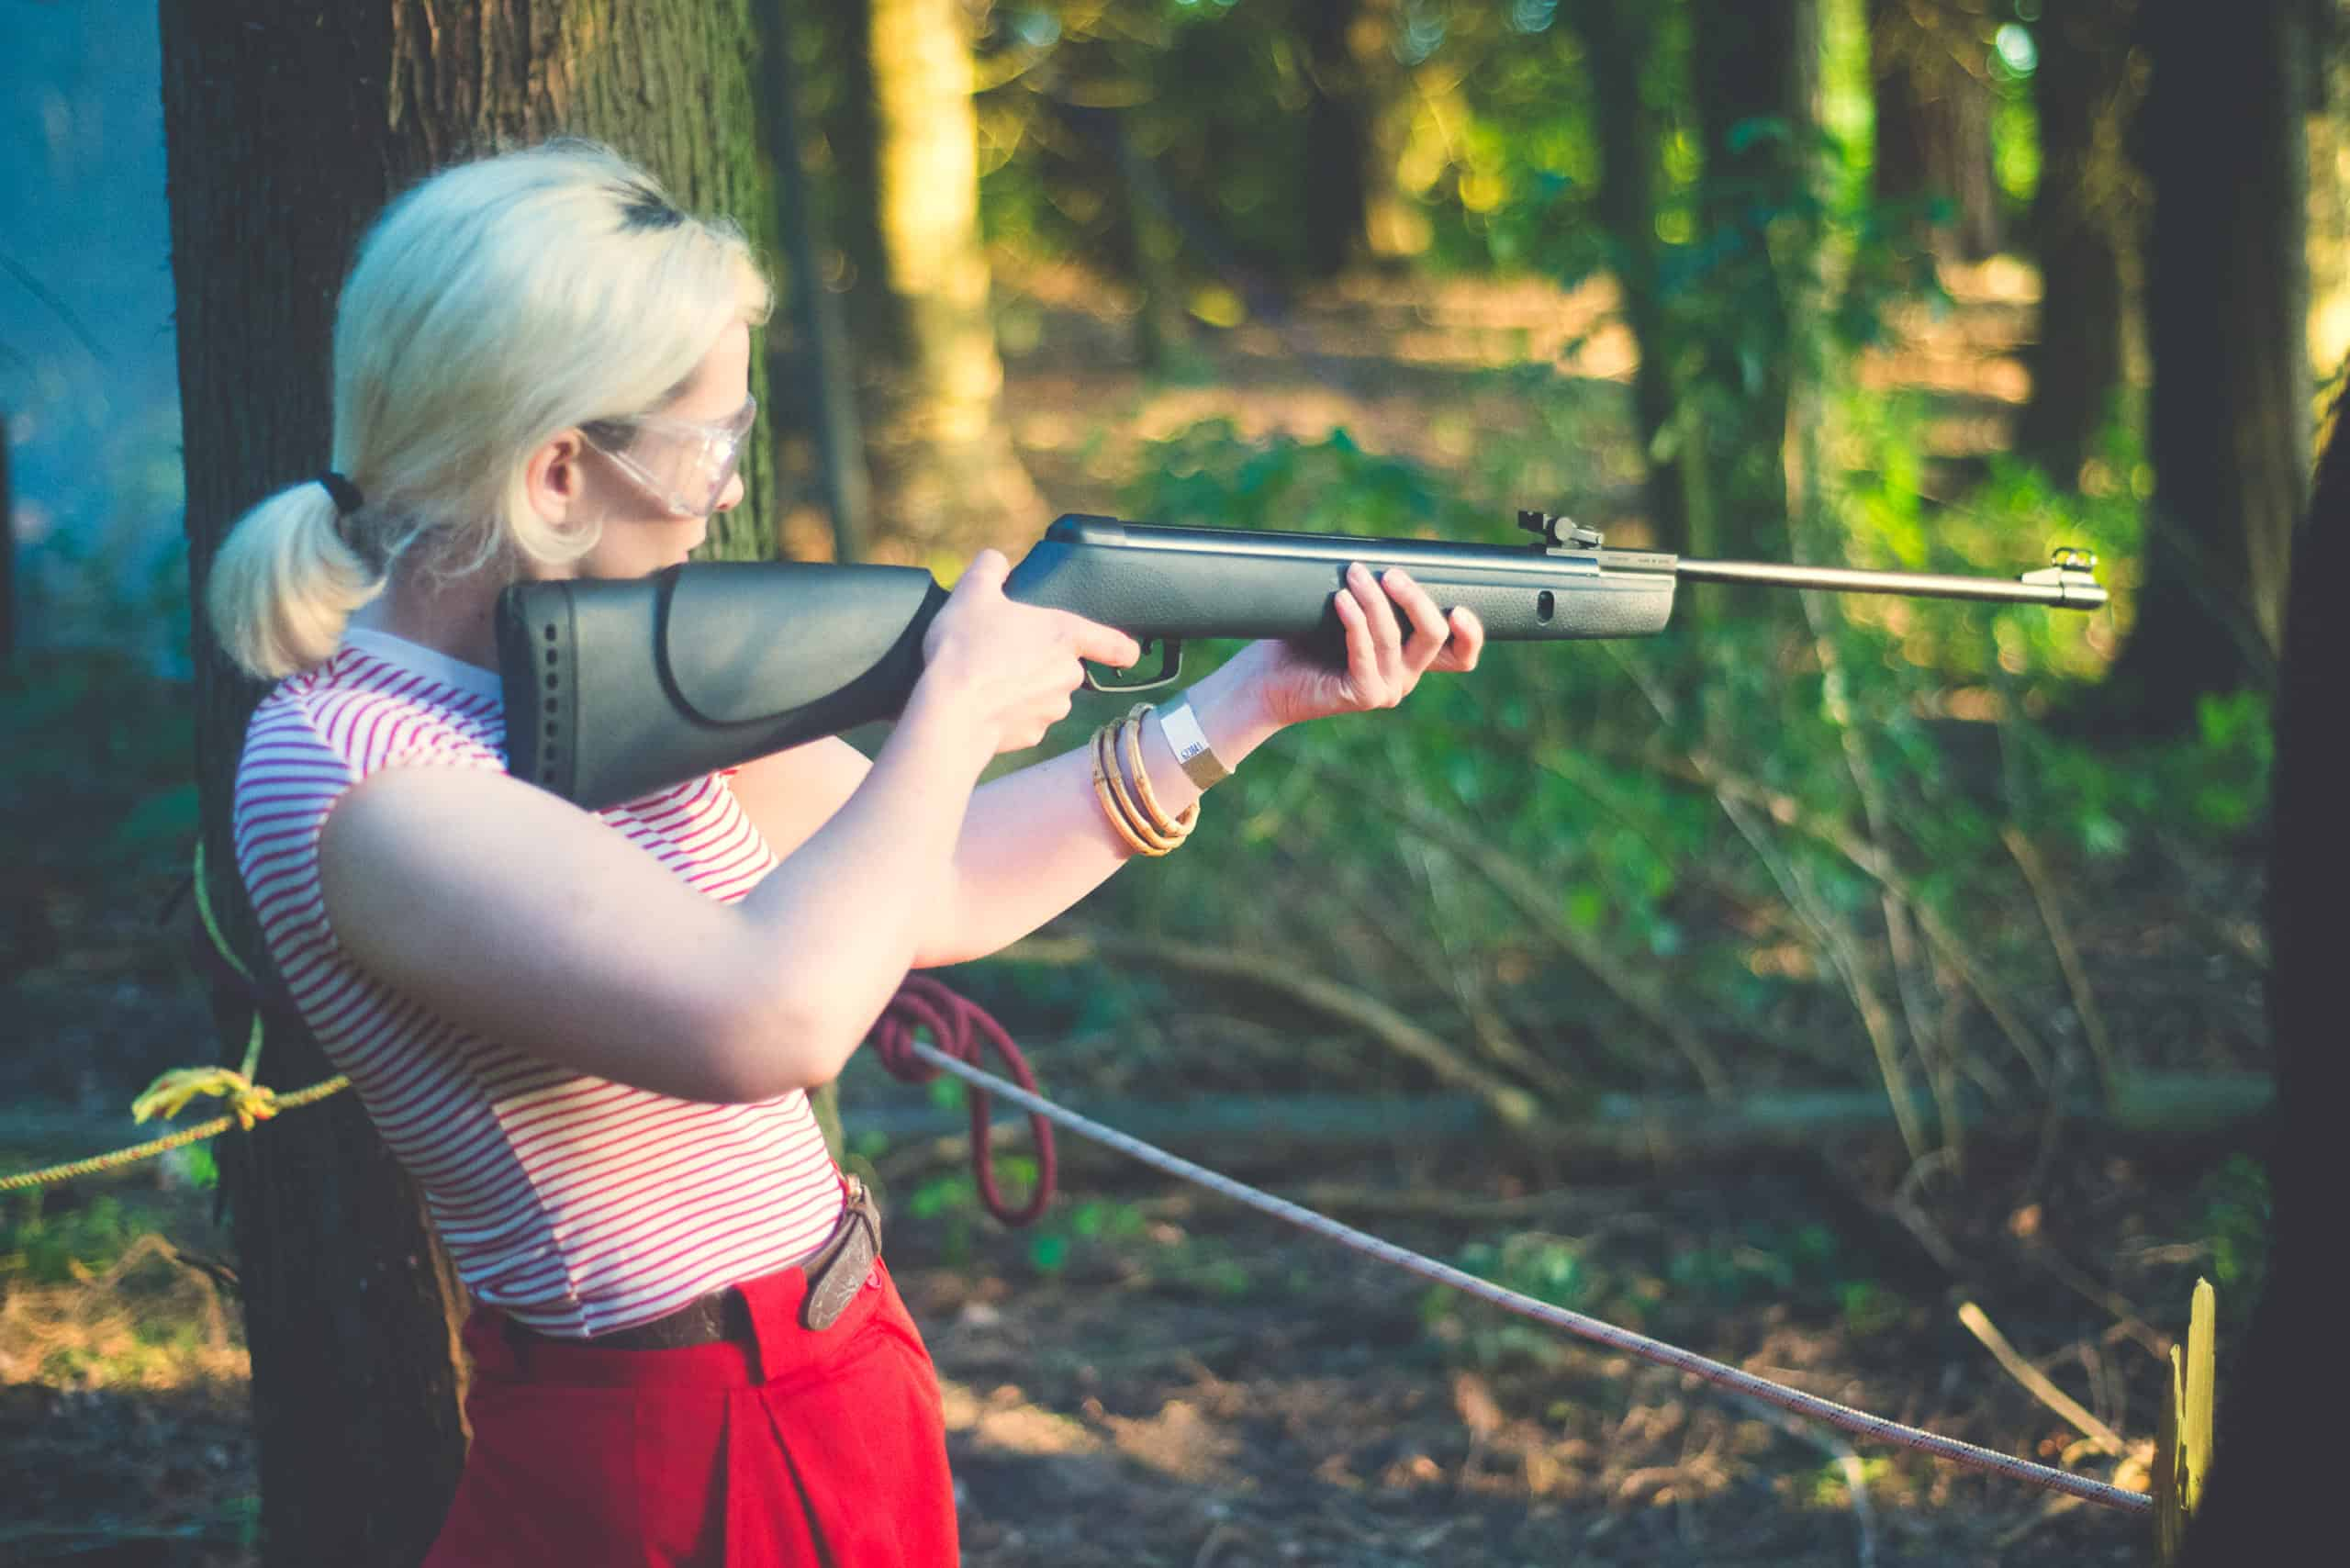 Girl at rifle shooting activity at Camp Wildfire. A summer weekend break in a forest near London and Kent. An outdoor woodland retreat featuring adventure activities, live music, DJs, parties and camping. Half summer adventure activity camp, half music festival, for adults only.